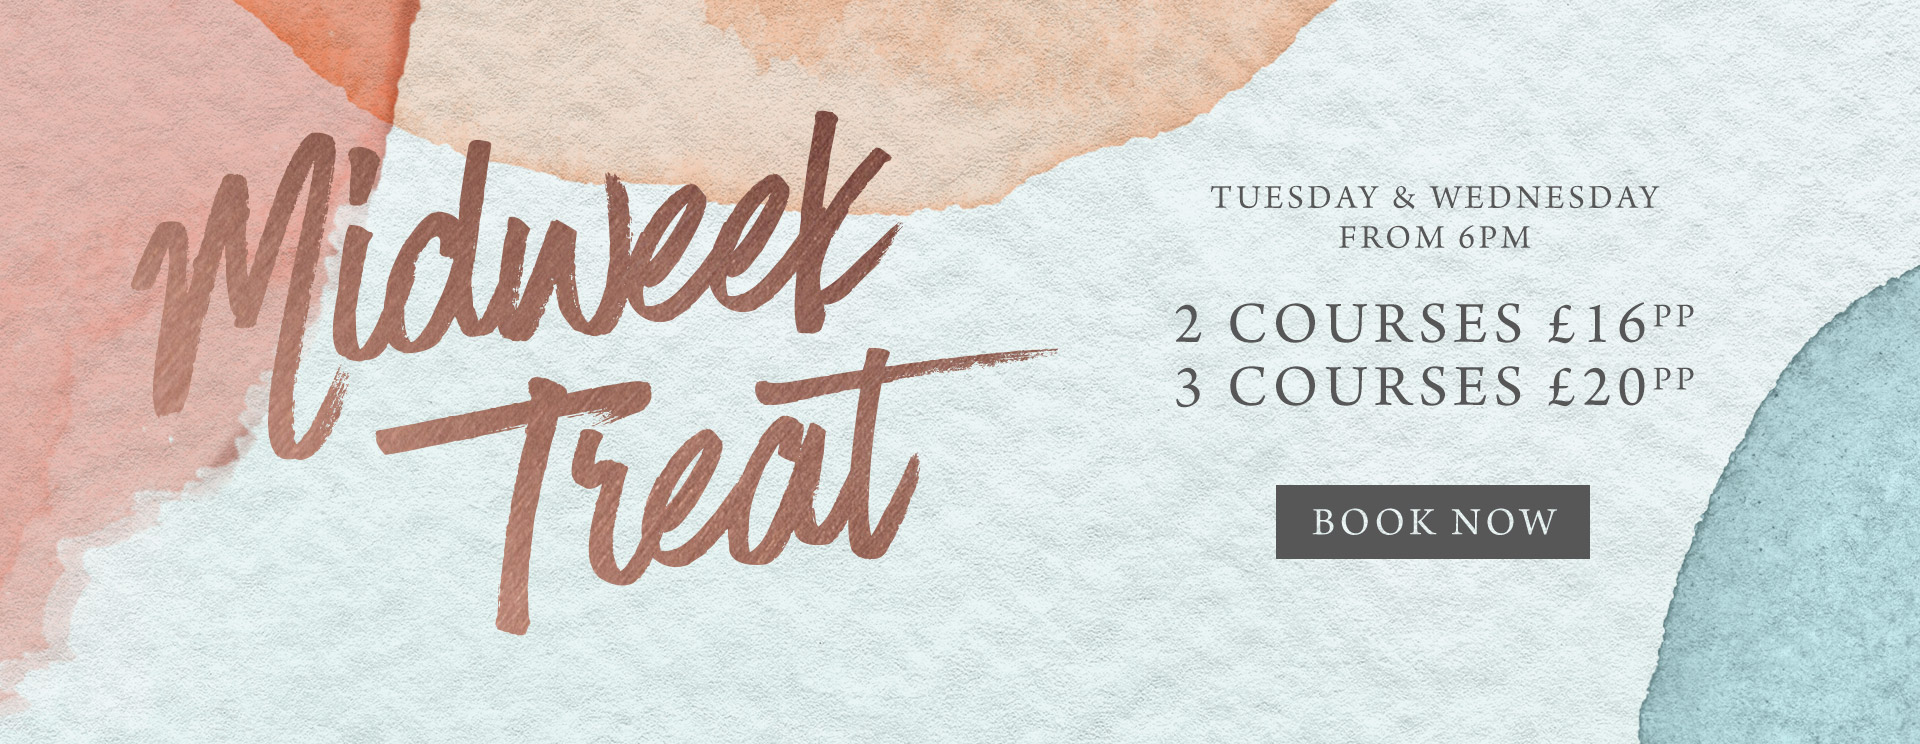 Midweek treat at Ashton - Book now